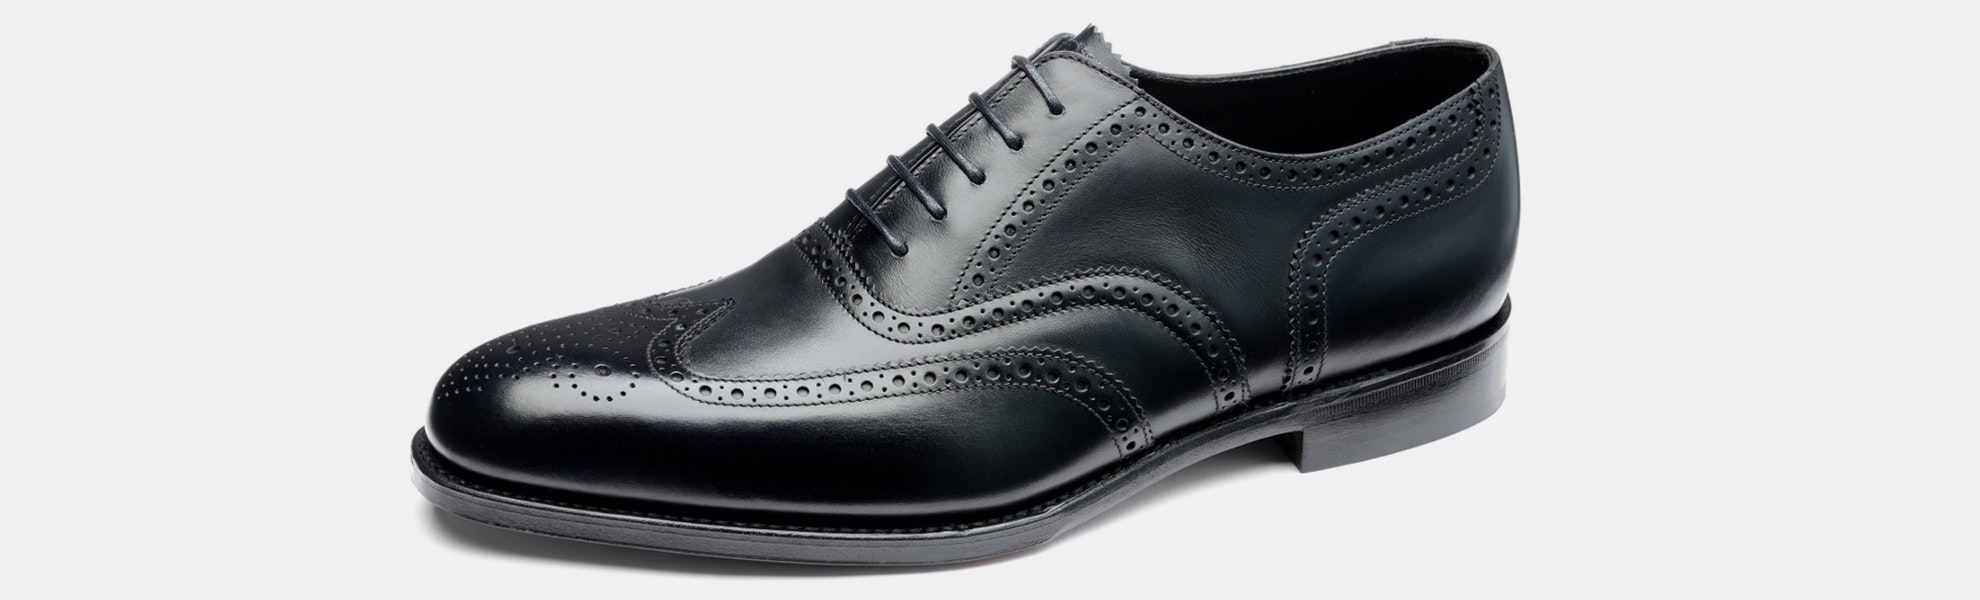 Loake 1880 Buckingham Brogue Shoes